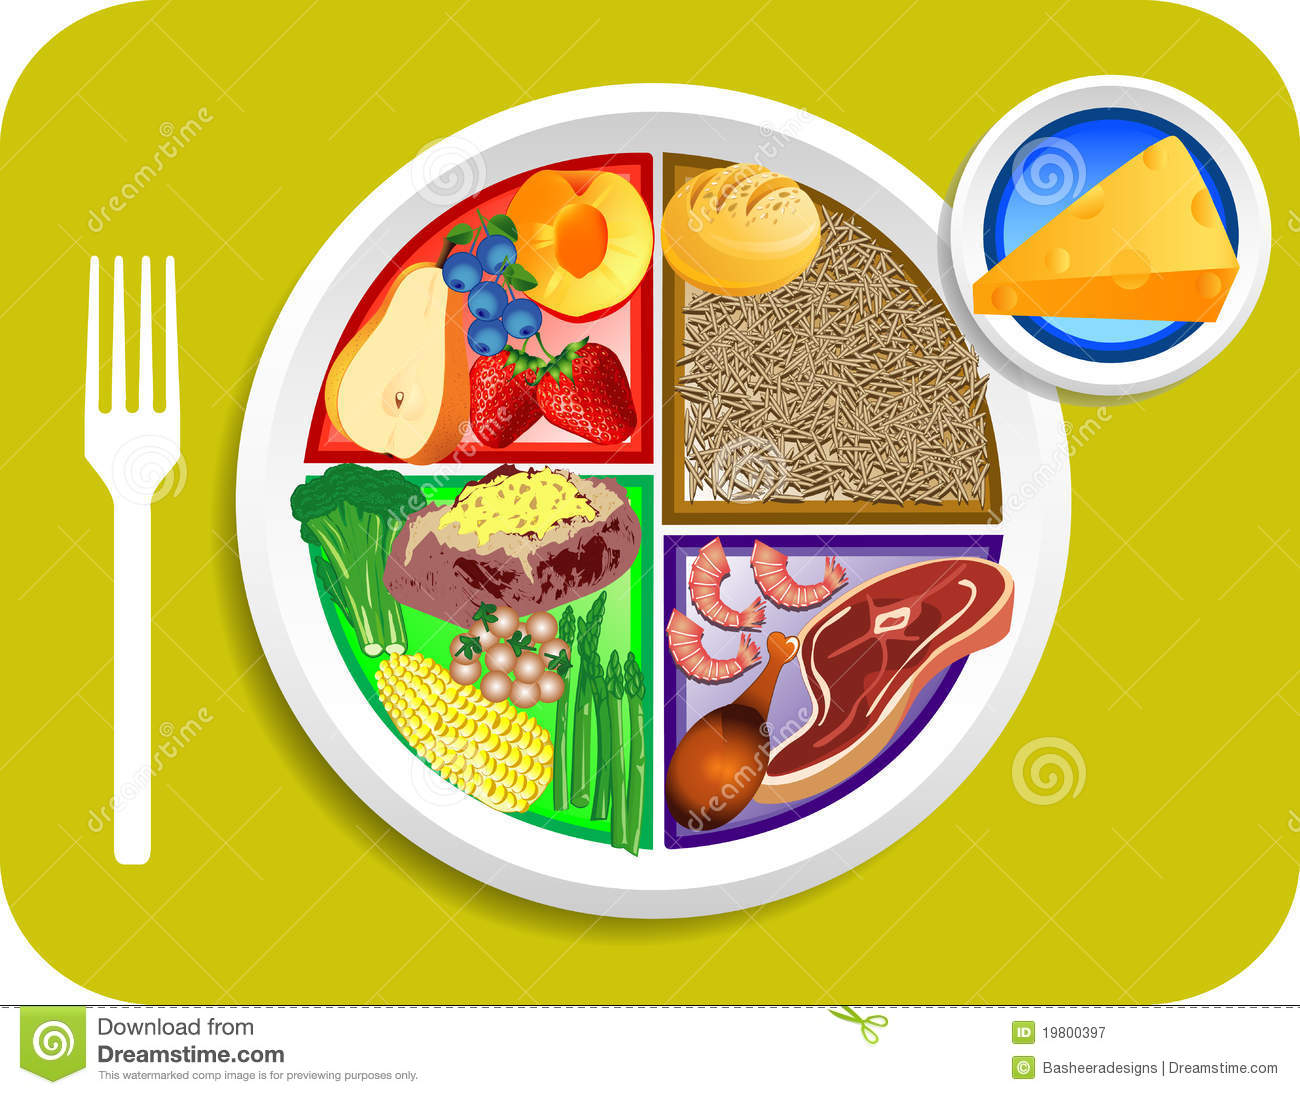 Food My Plate Breakfast Portions Royalty Free Stock Image - Image ...